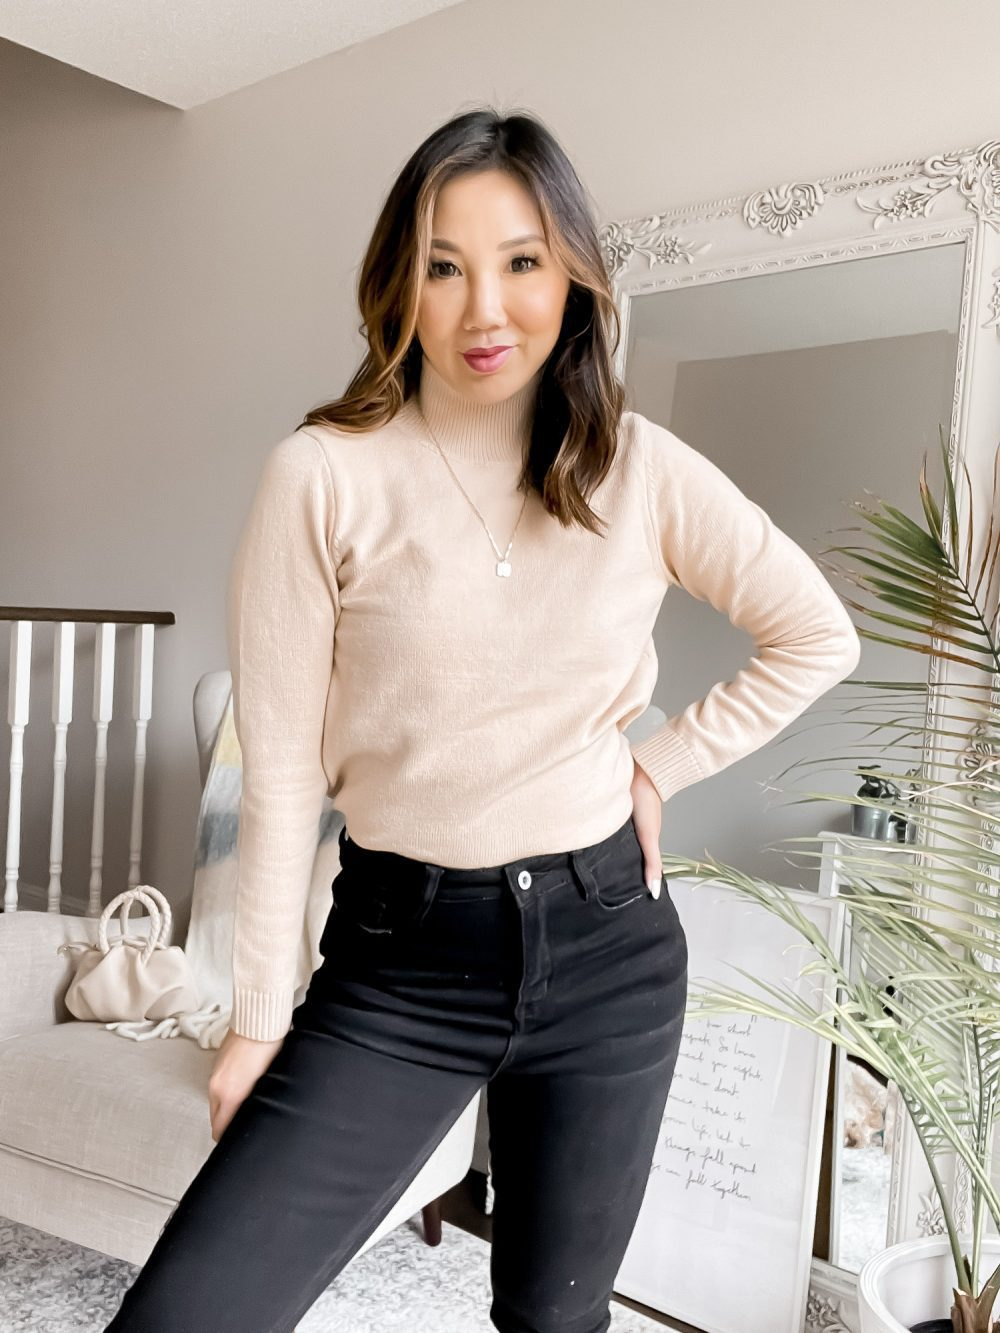 There's something so chic about a turtleneck sweater. It's beautiful to wear alone, but also great a great wardrobe staple for layering with other pieces.